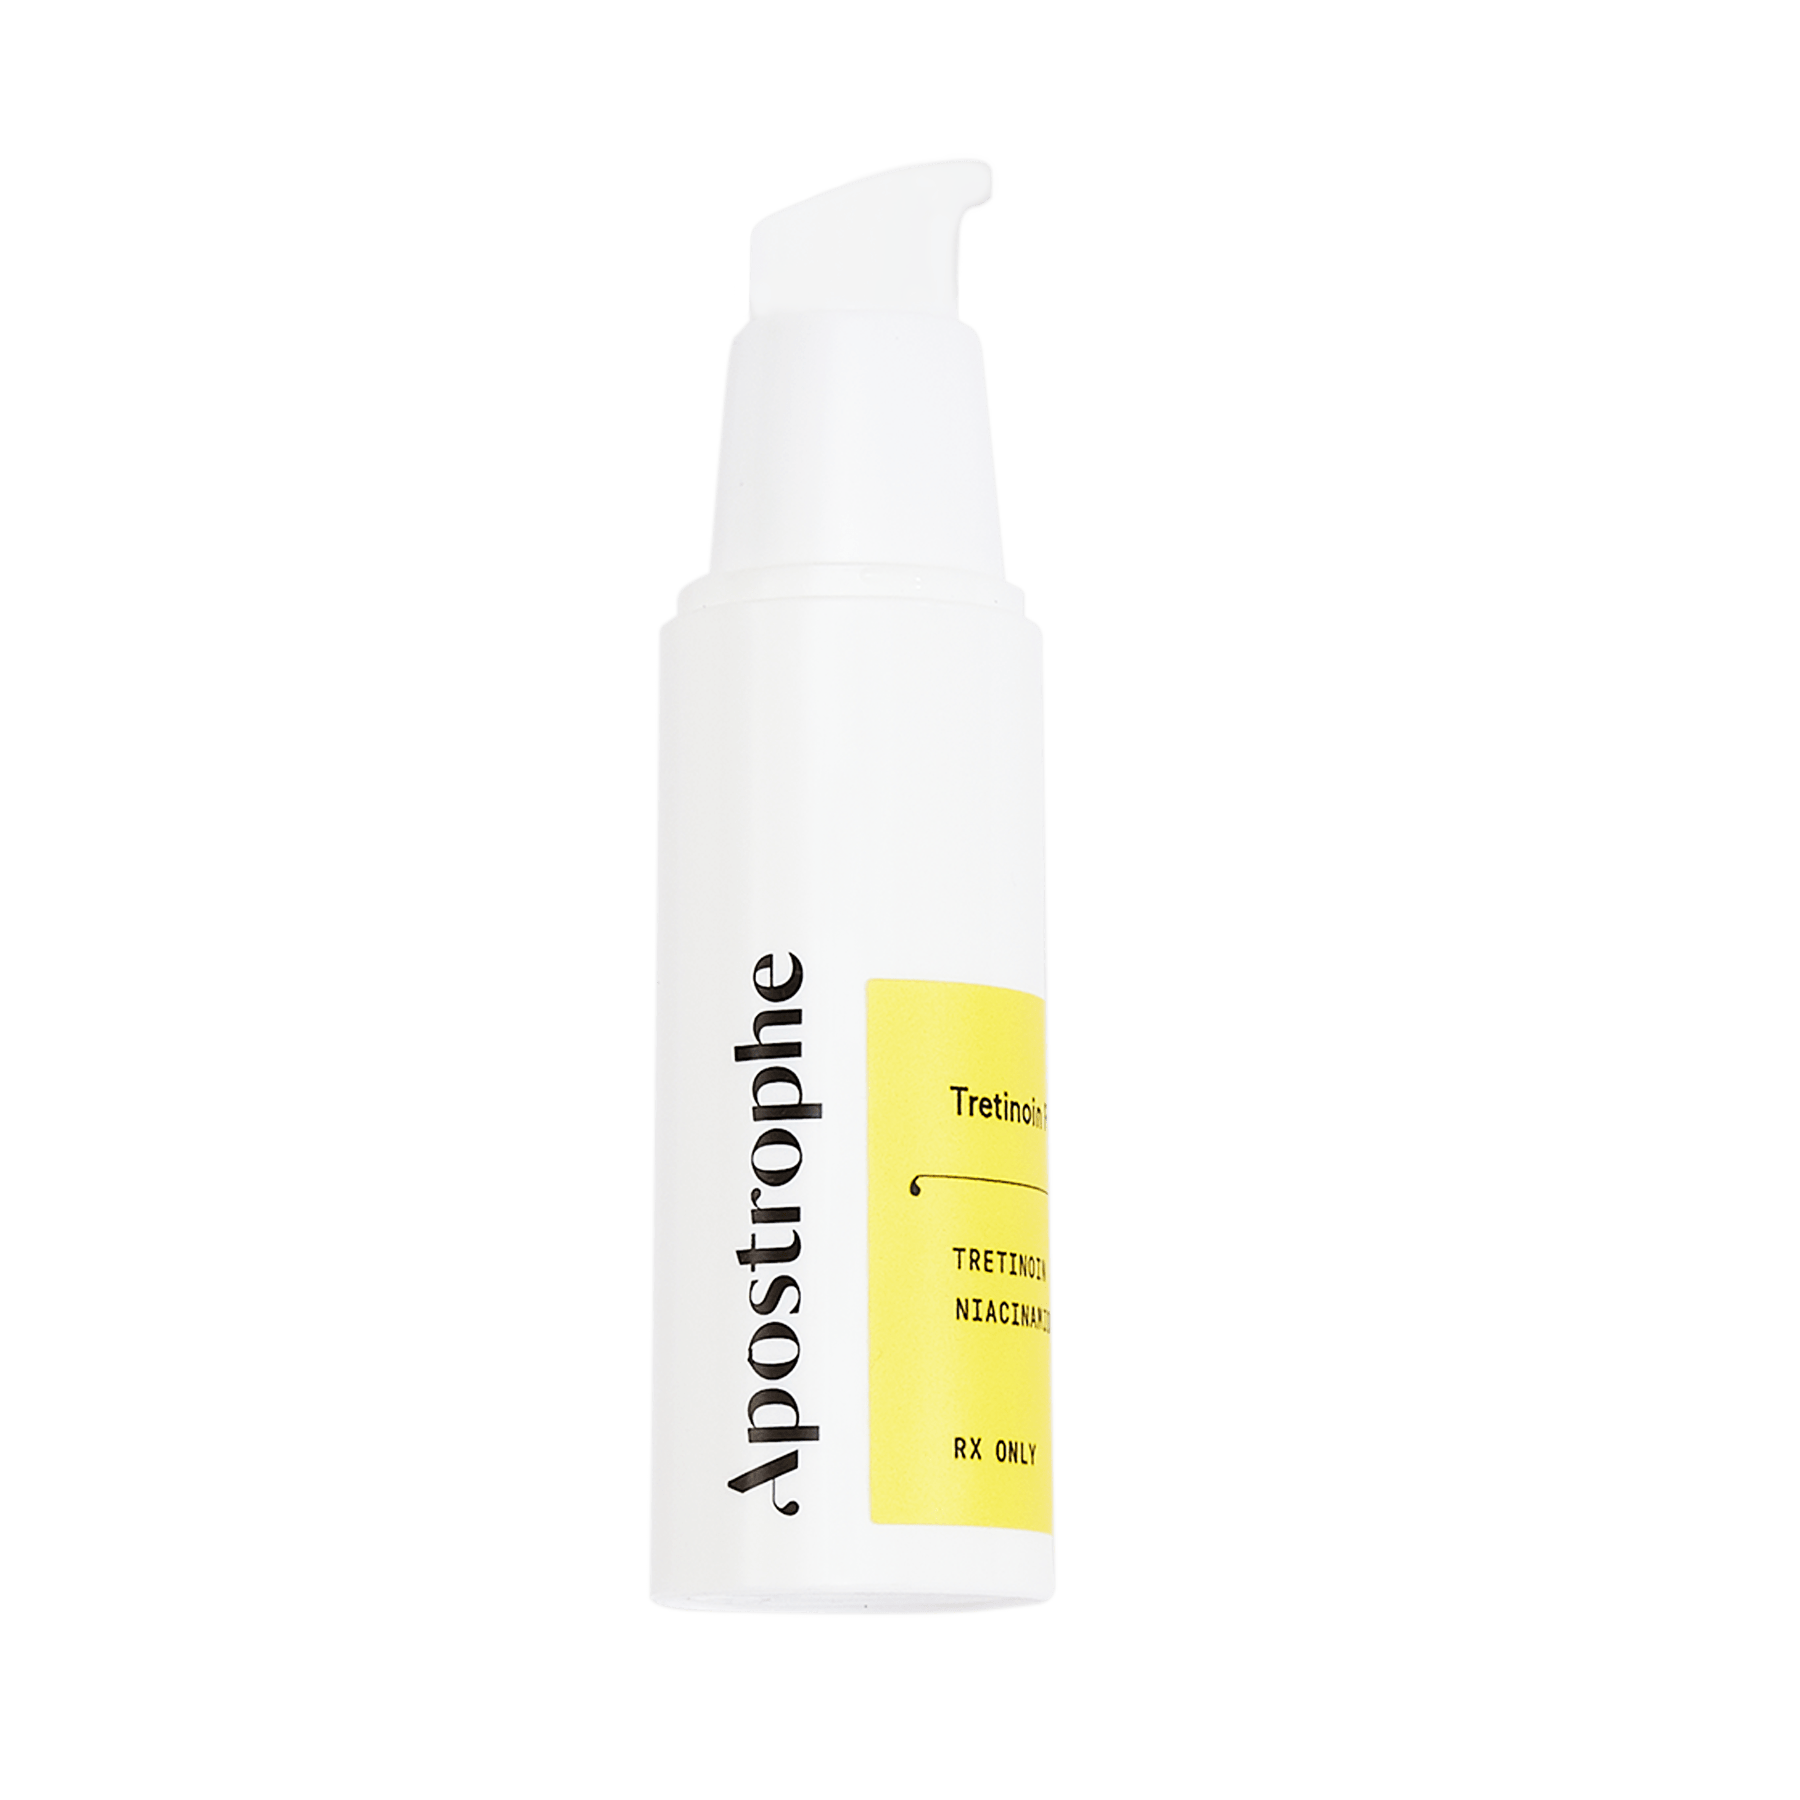 Apostrophe topical medication bottle